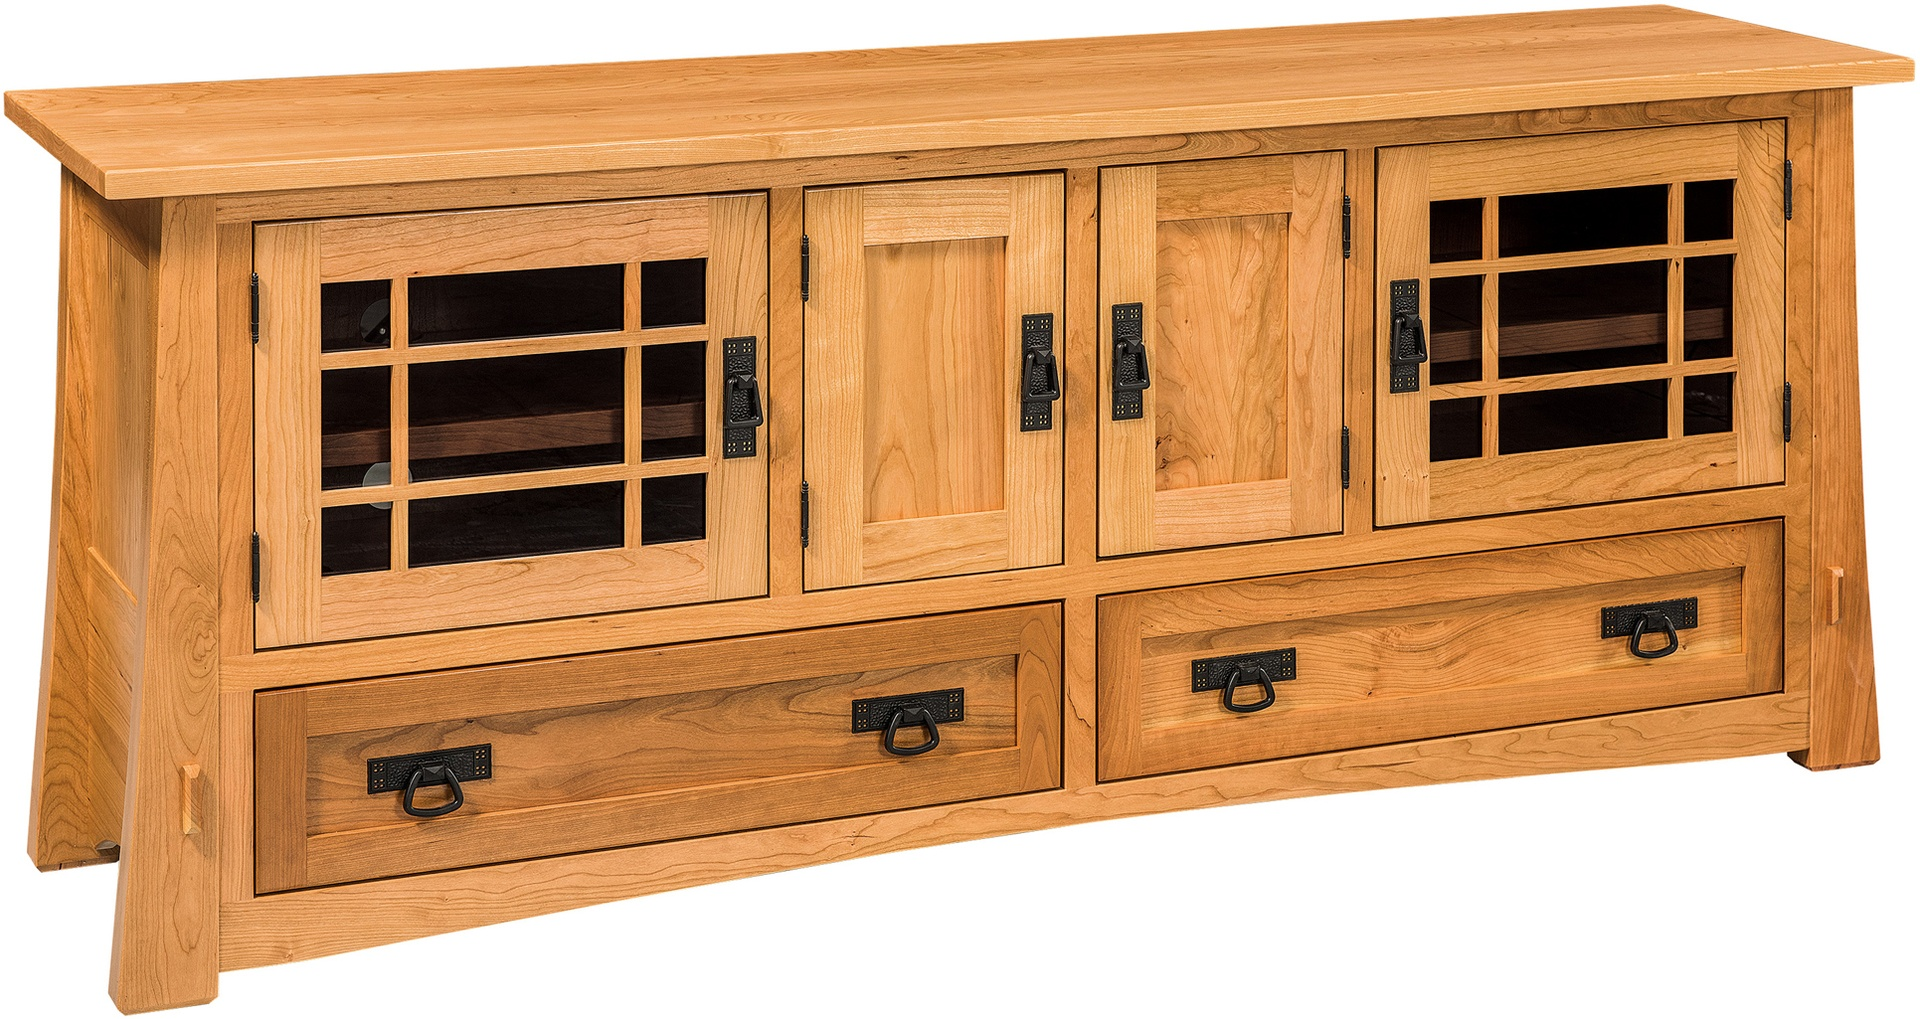 Modesto TV Cabinet Collection with Drawers